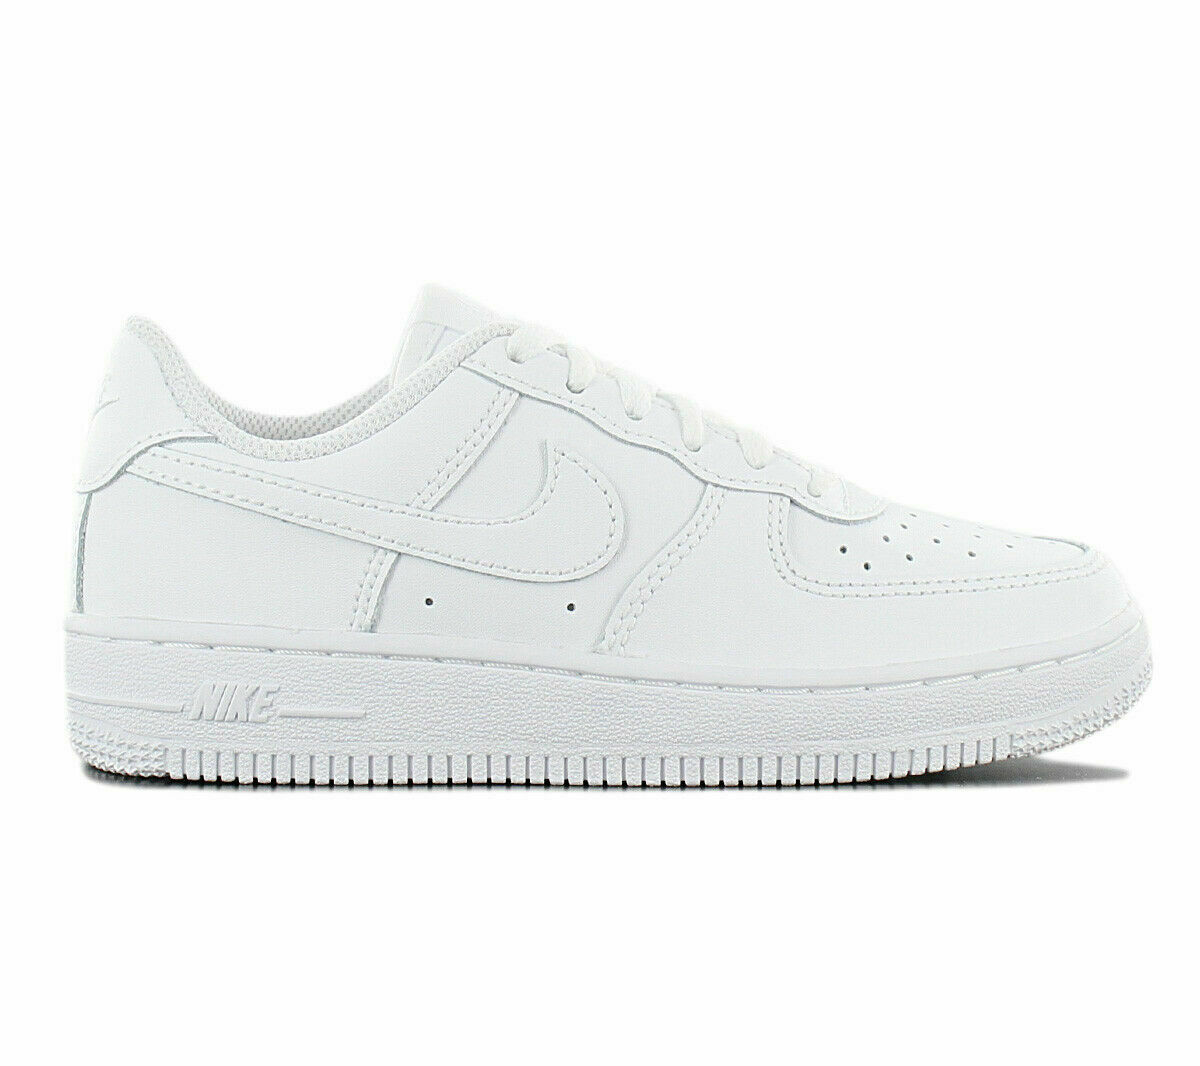 Nike Air Force 1 Low Leather Ps